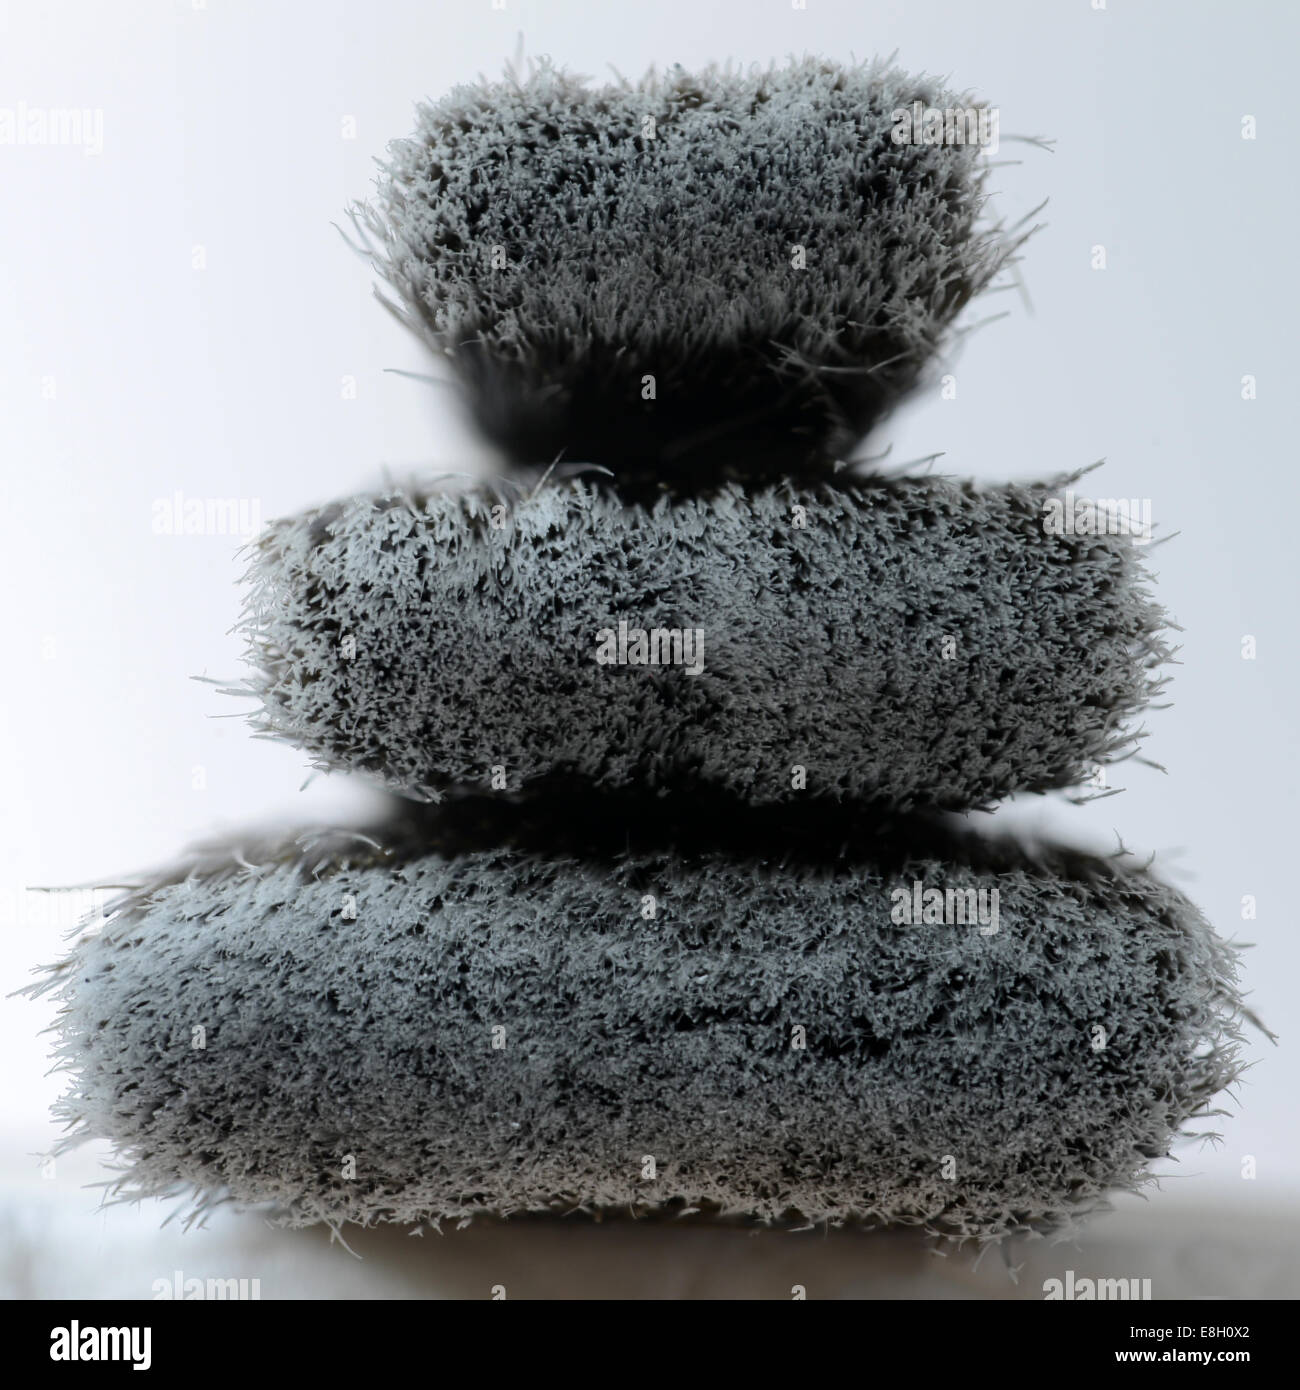 bristles on three paint brushes - Stock Image